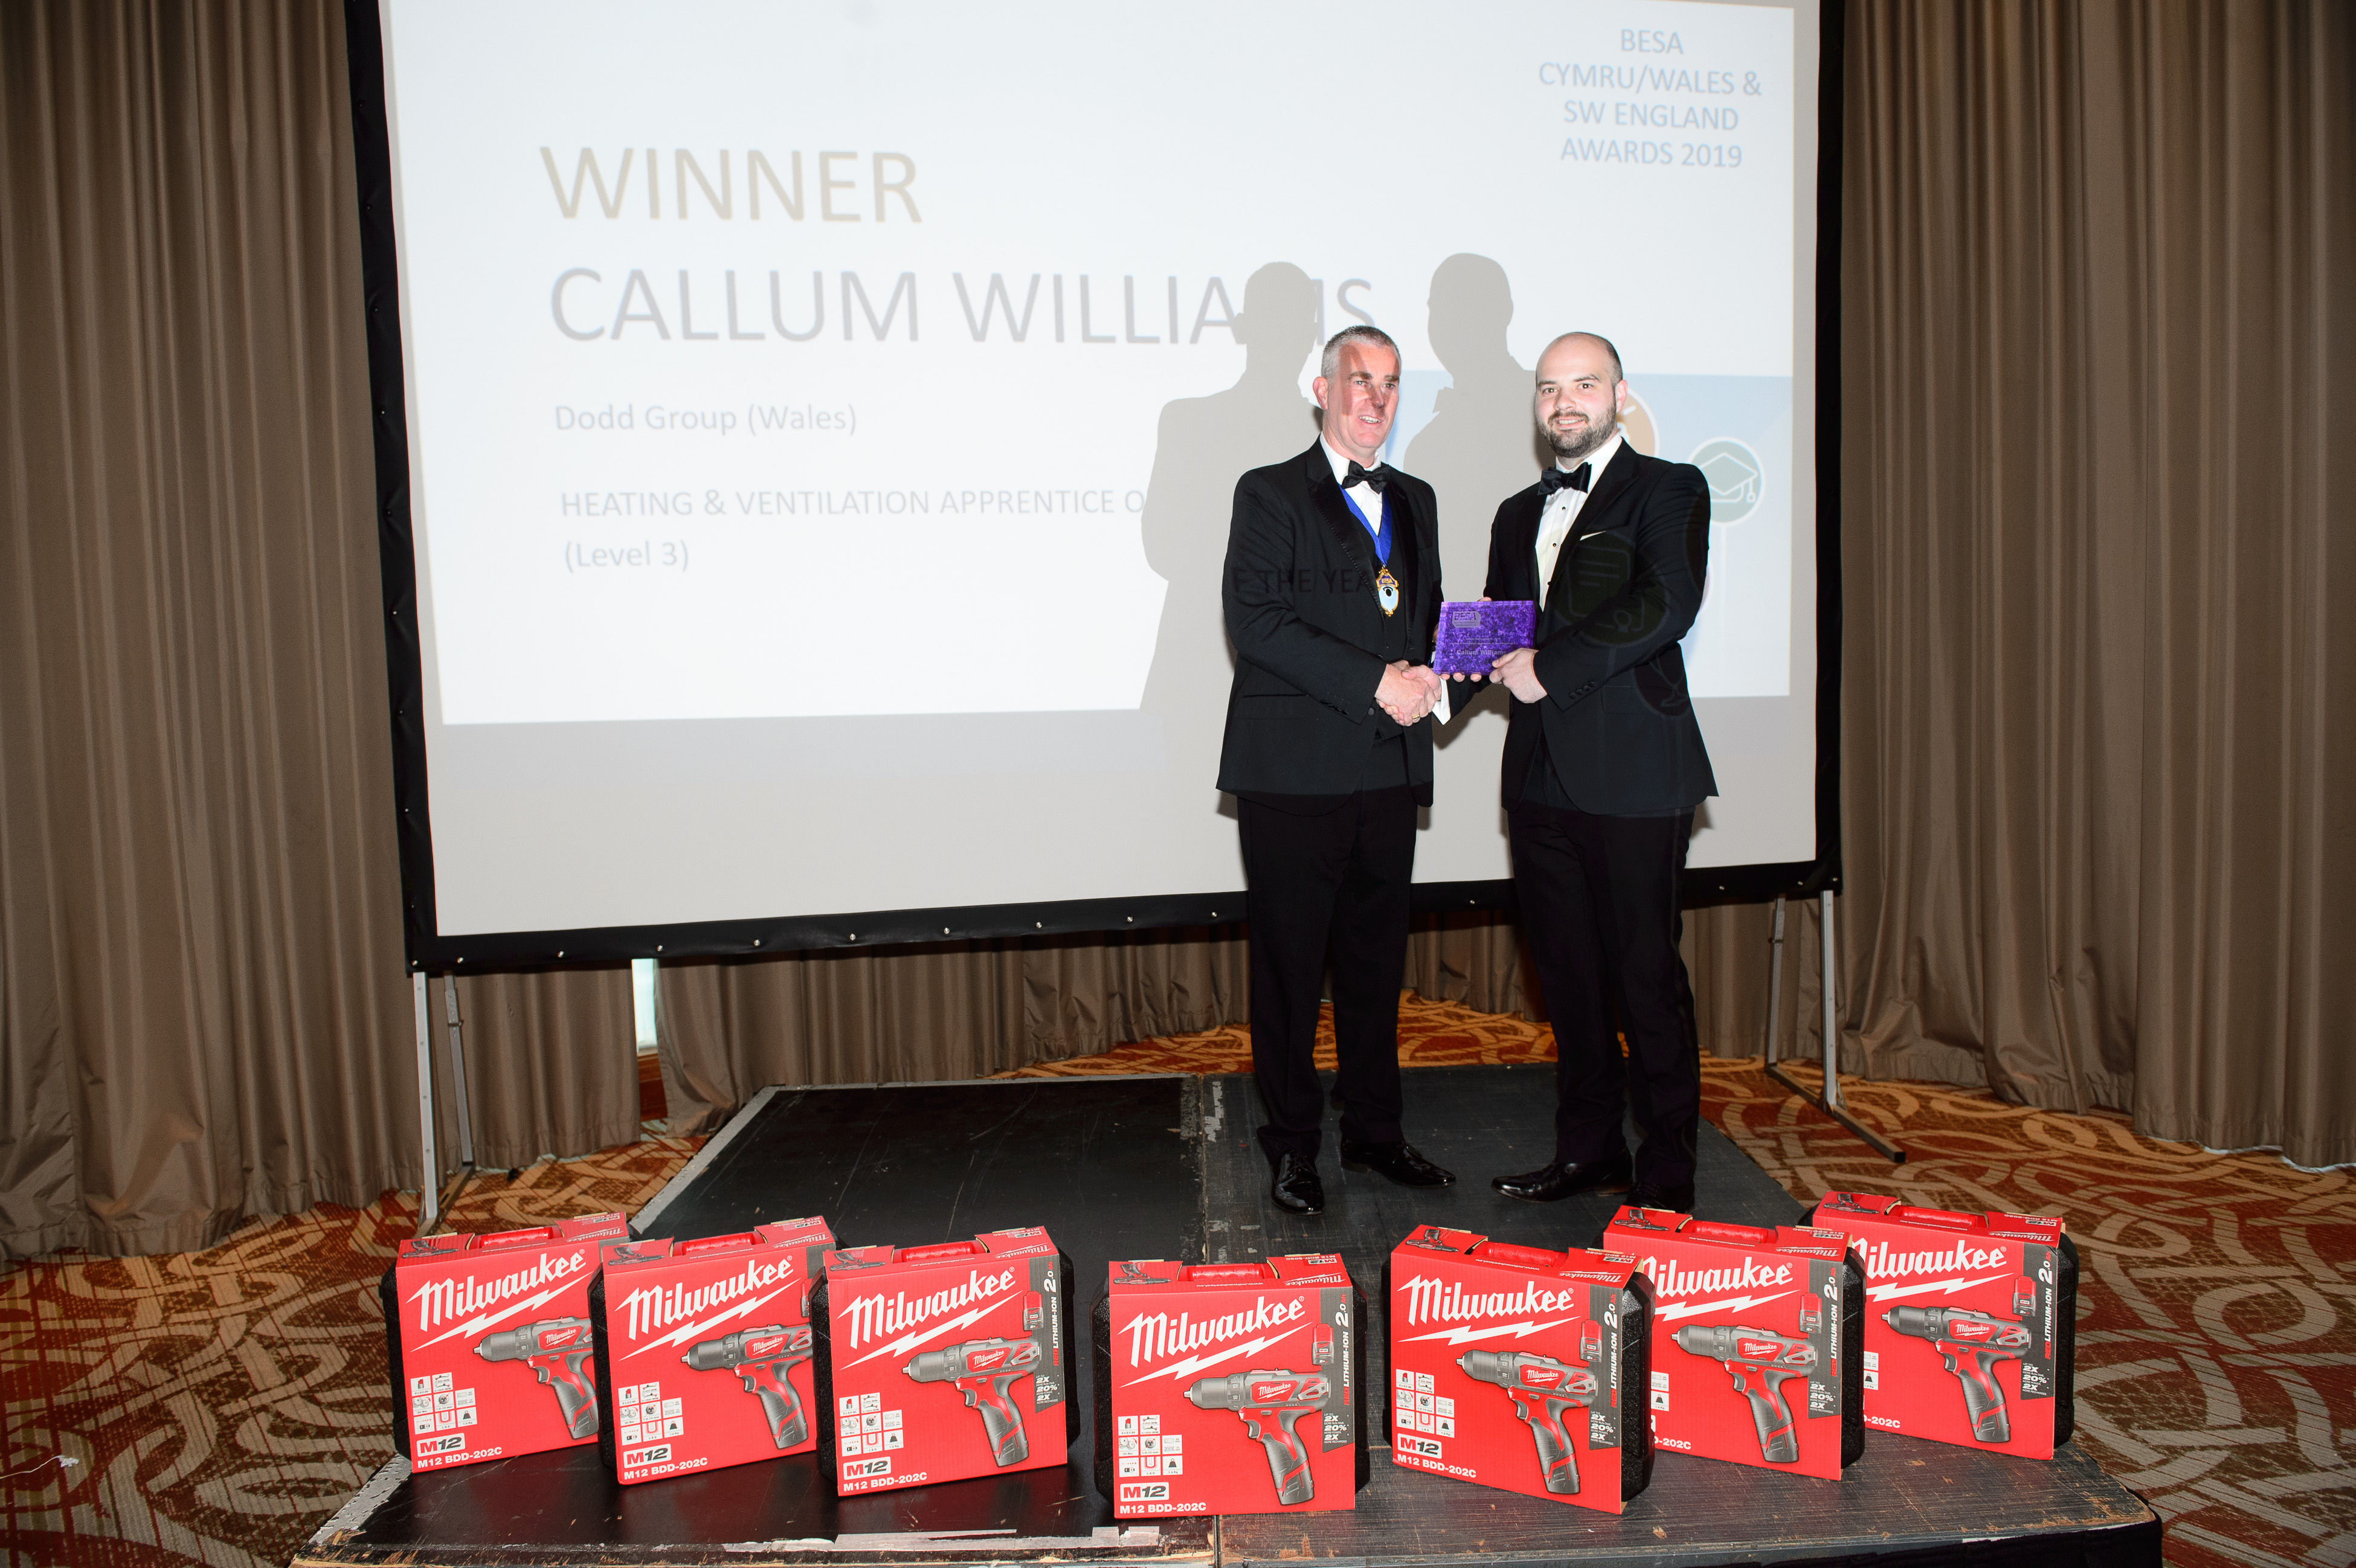 Callum Williams, Heating & Ventilation Apprentice of the Year Level 3